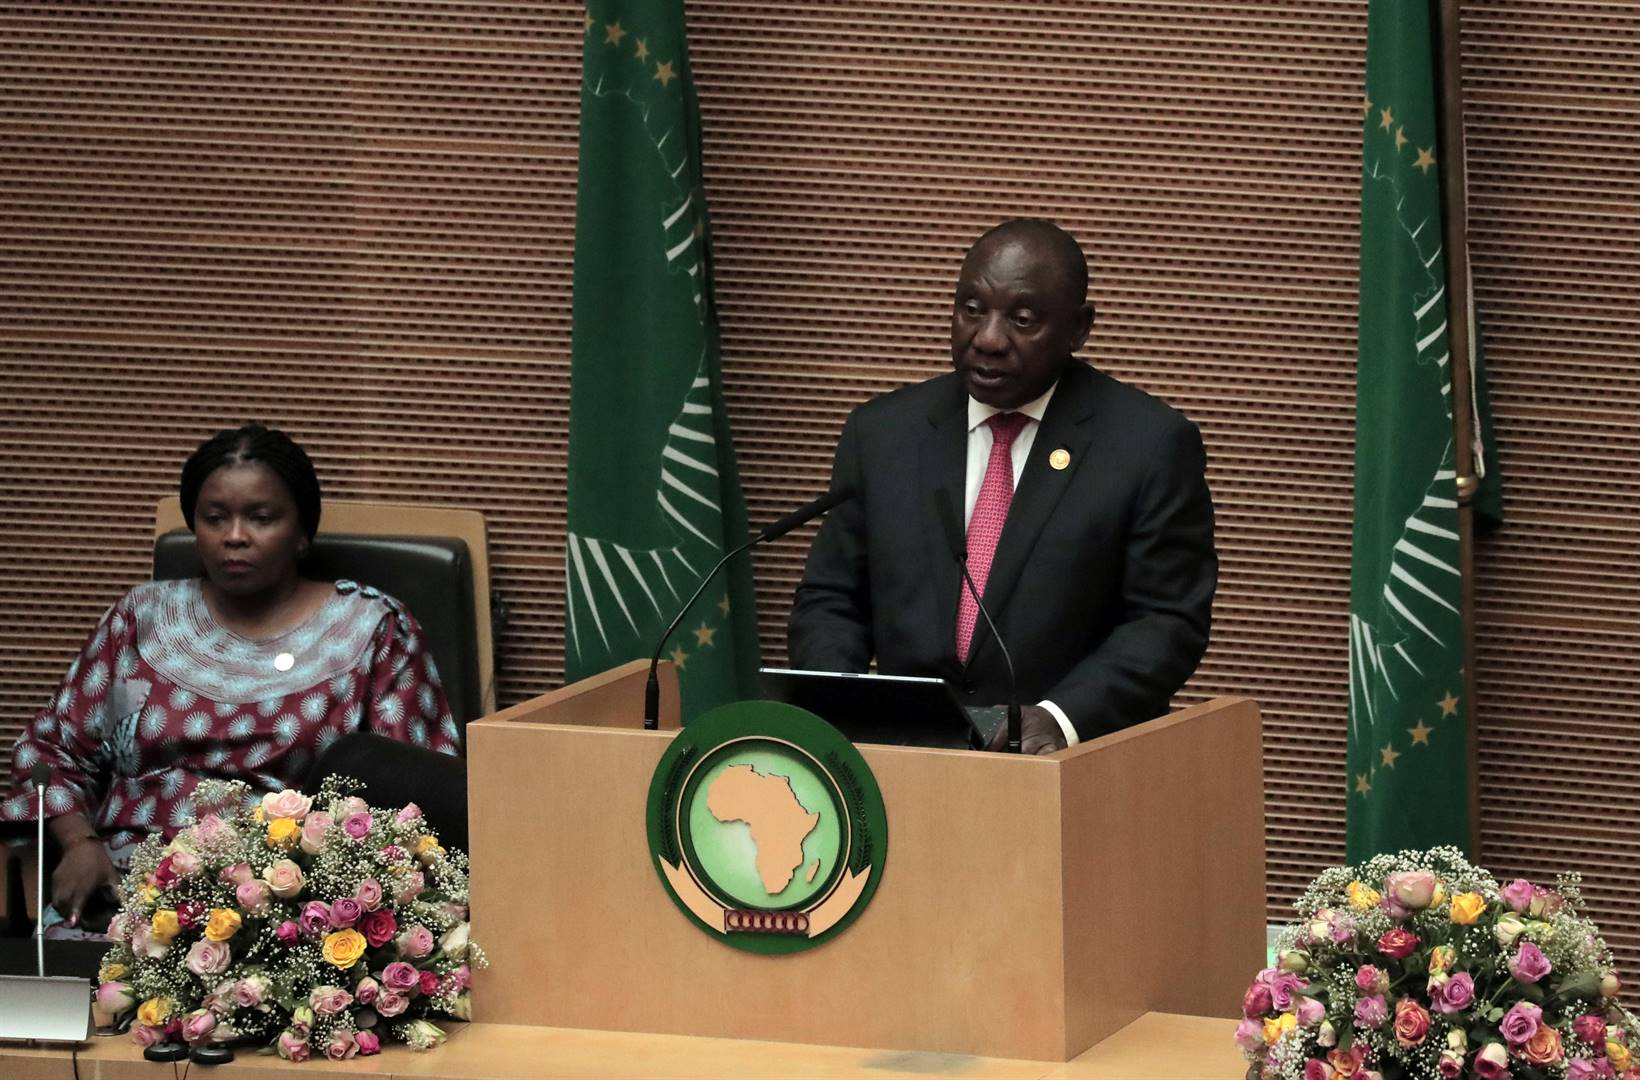 President Cyril Ramaphosa addresses the opening of the 33rd ordinary session of the assembly of the heads of state and the government of the African Union (AU) in Addis Ababa, Ethiopia, February 9, 2020. Picture: Tiksa Negeri/Reuters